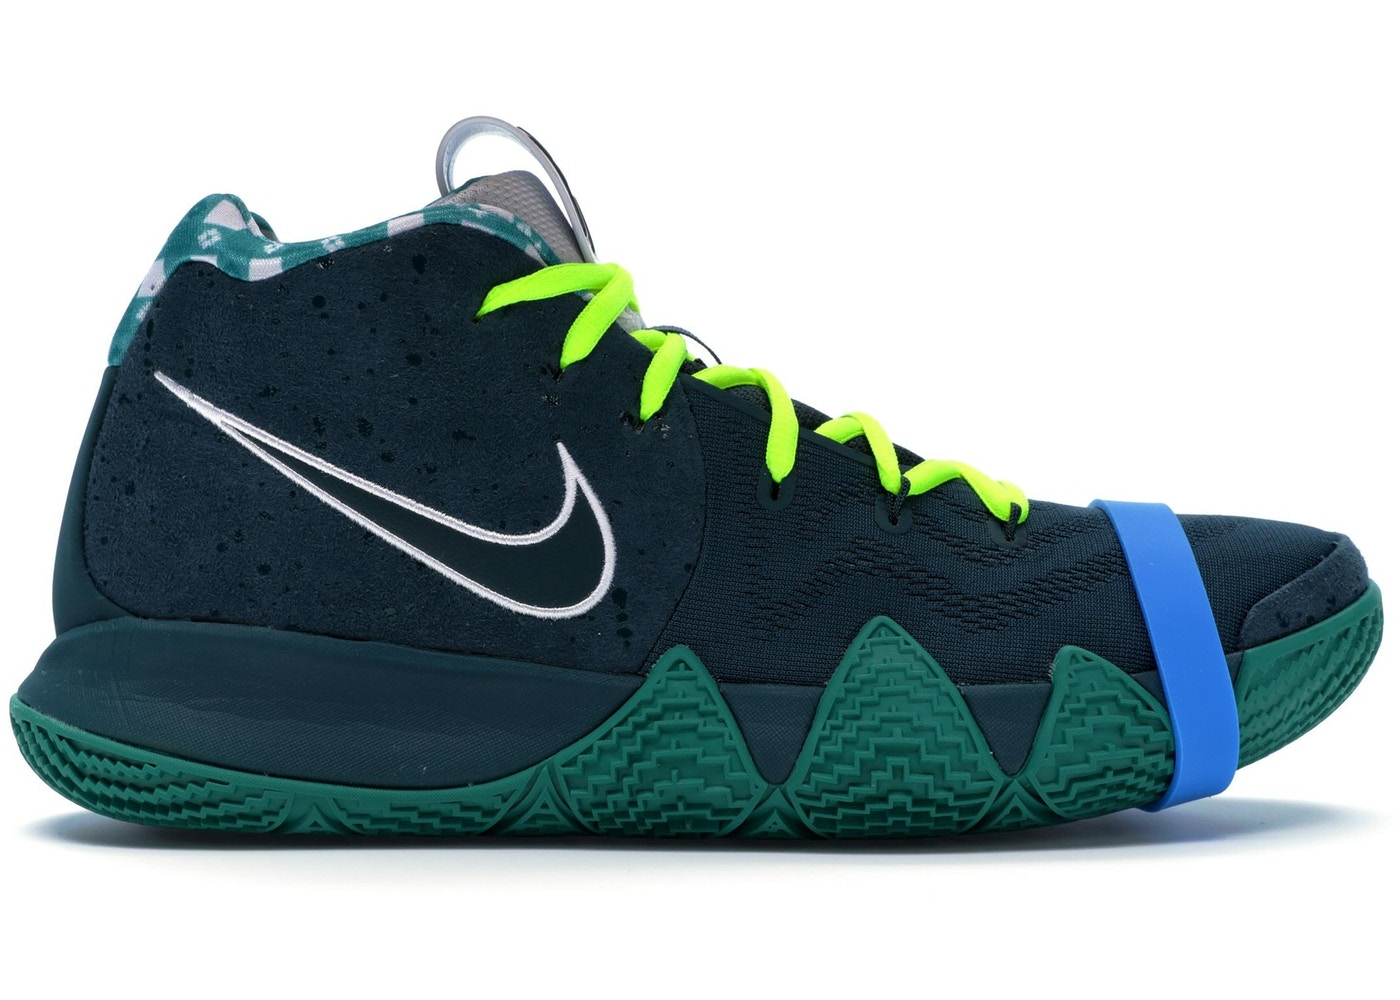 the best attitude 225a4 d19dc Nike Basketball Kyrie Shoes - Average Sale Price